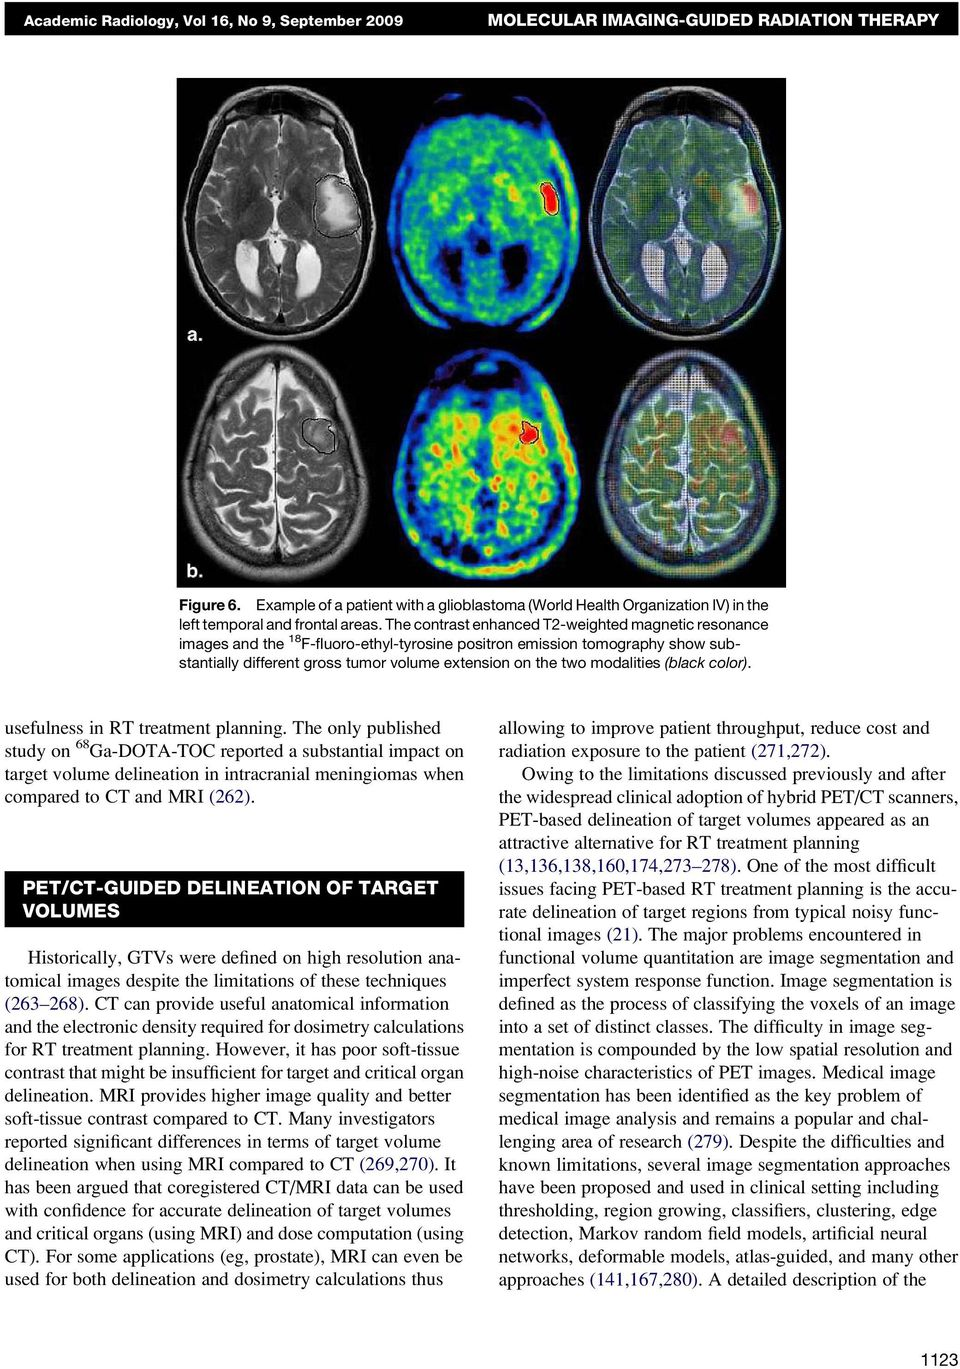 The contrast enhanced T2-weighted magnetic resonance images and the 18 F-fluoro-ethyl-tyrosine positron emission tomography show substantially different gross tumor volume extension on the two